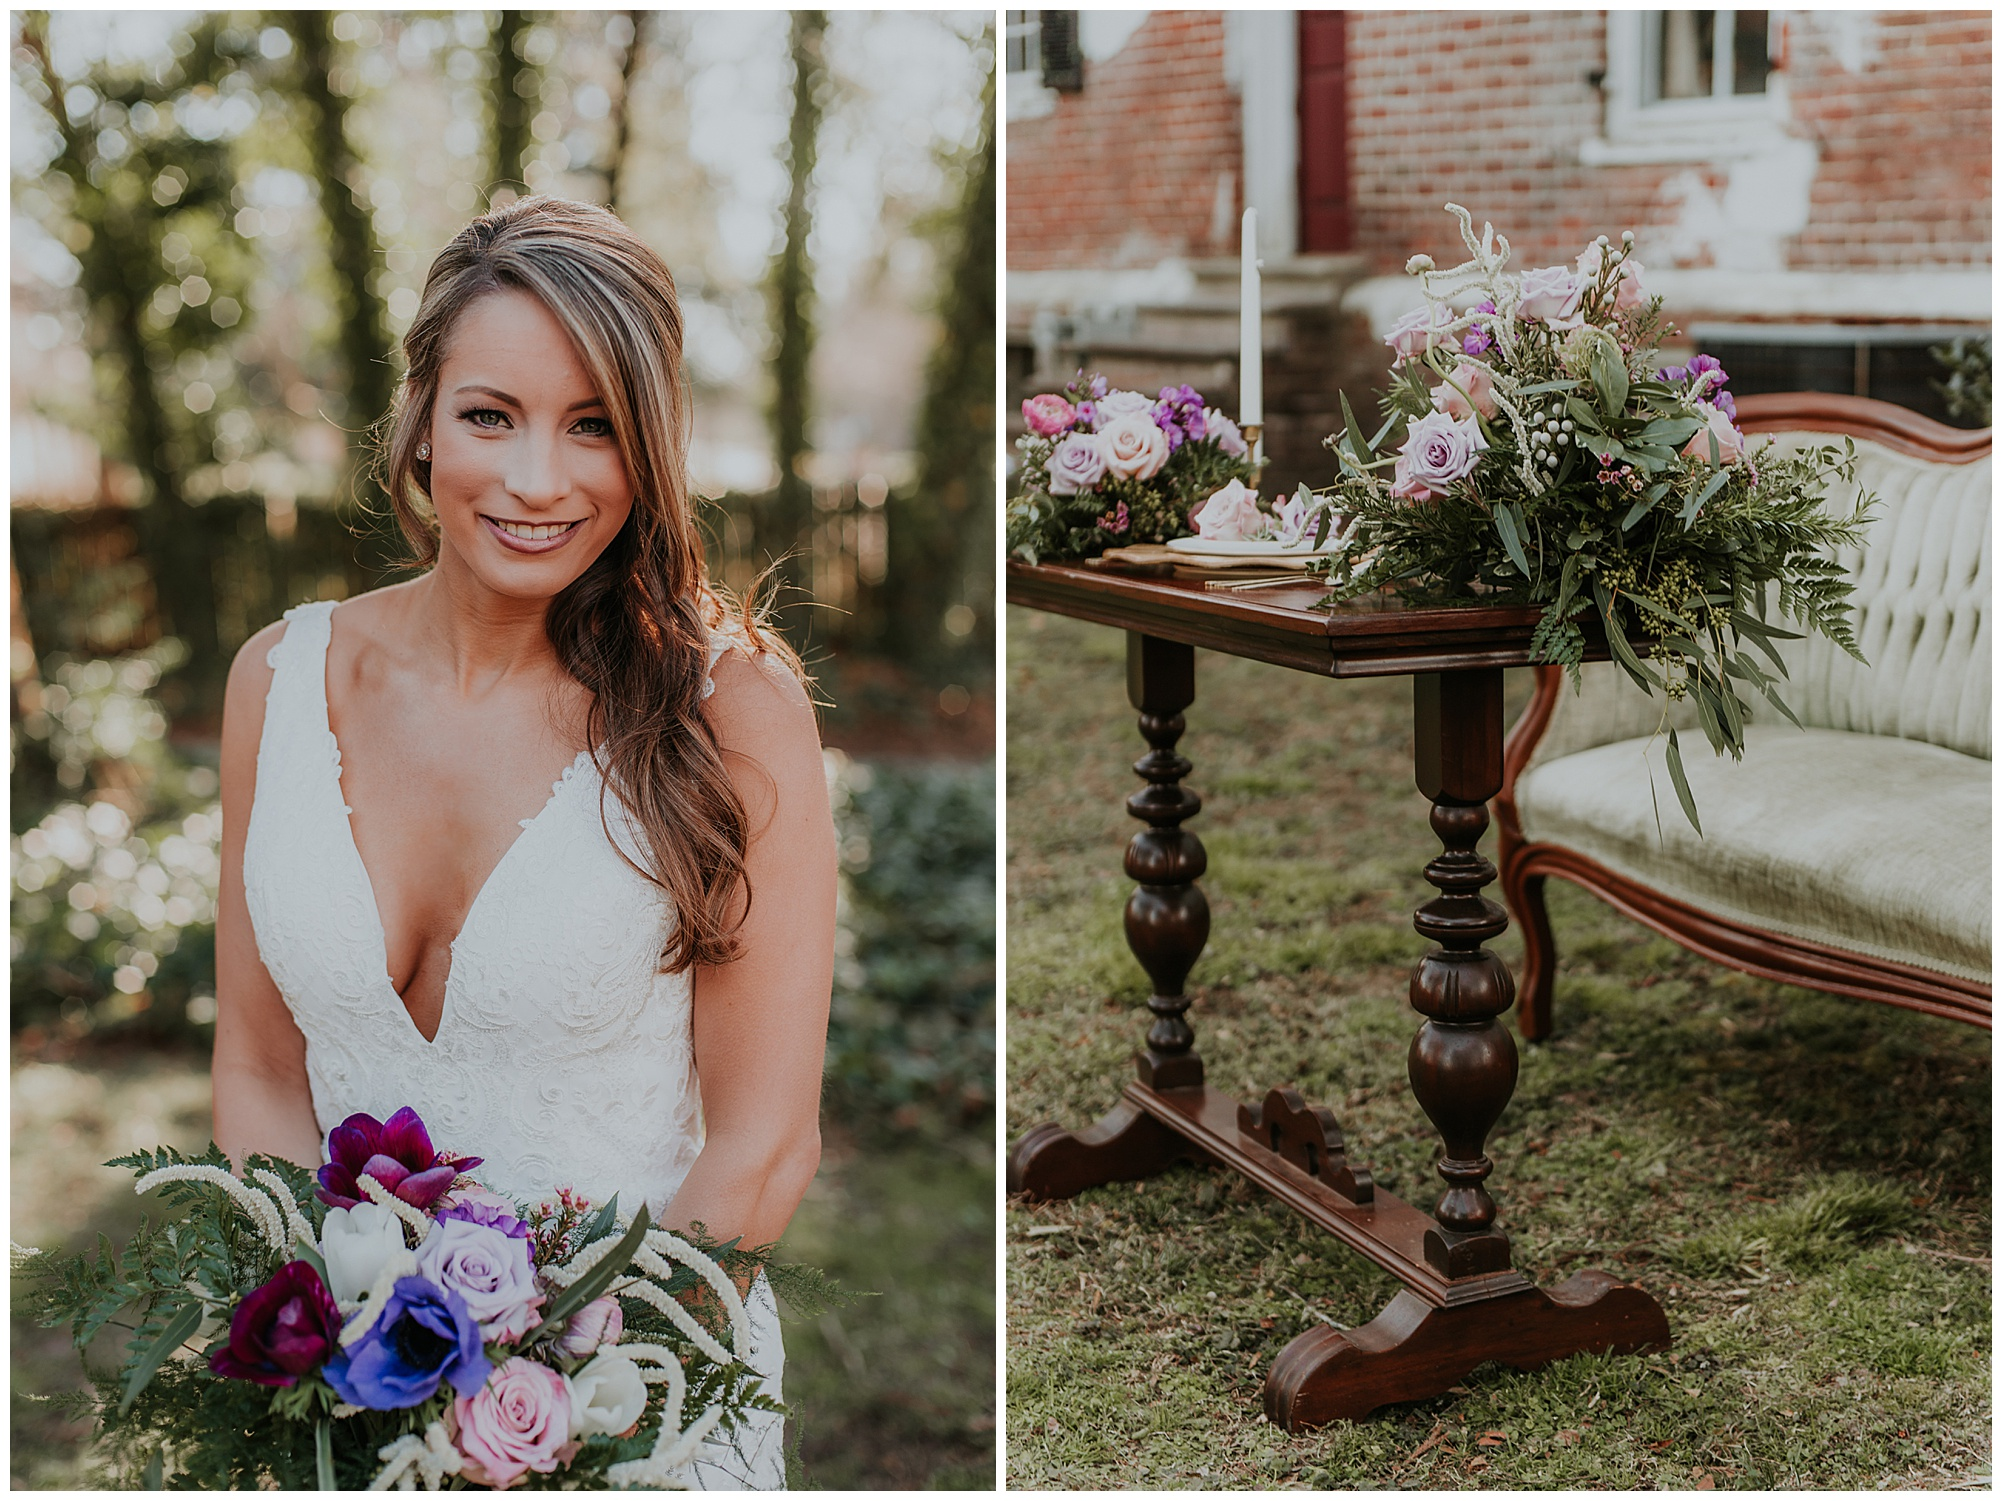 vintage style lounge seating area and boho style fashion bride portrait outdoors at historic maryland venue chanceford hall bed and breakfast